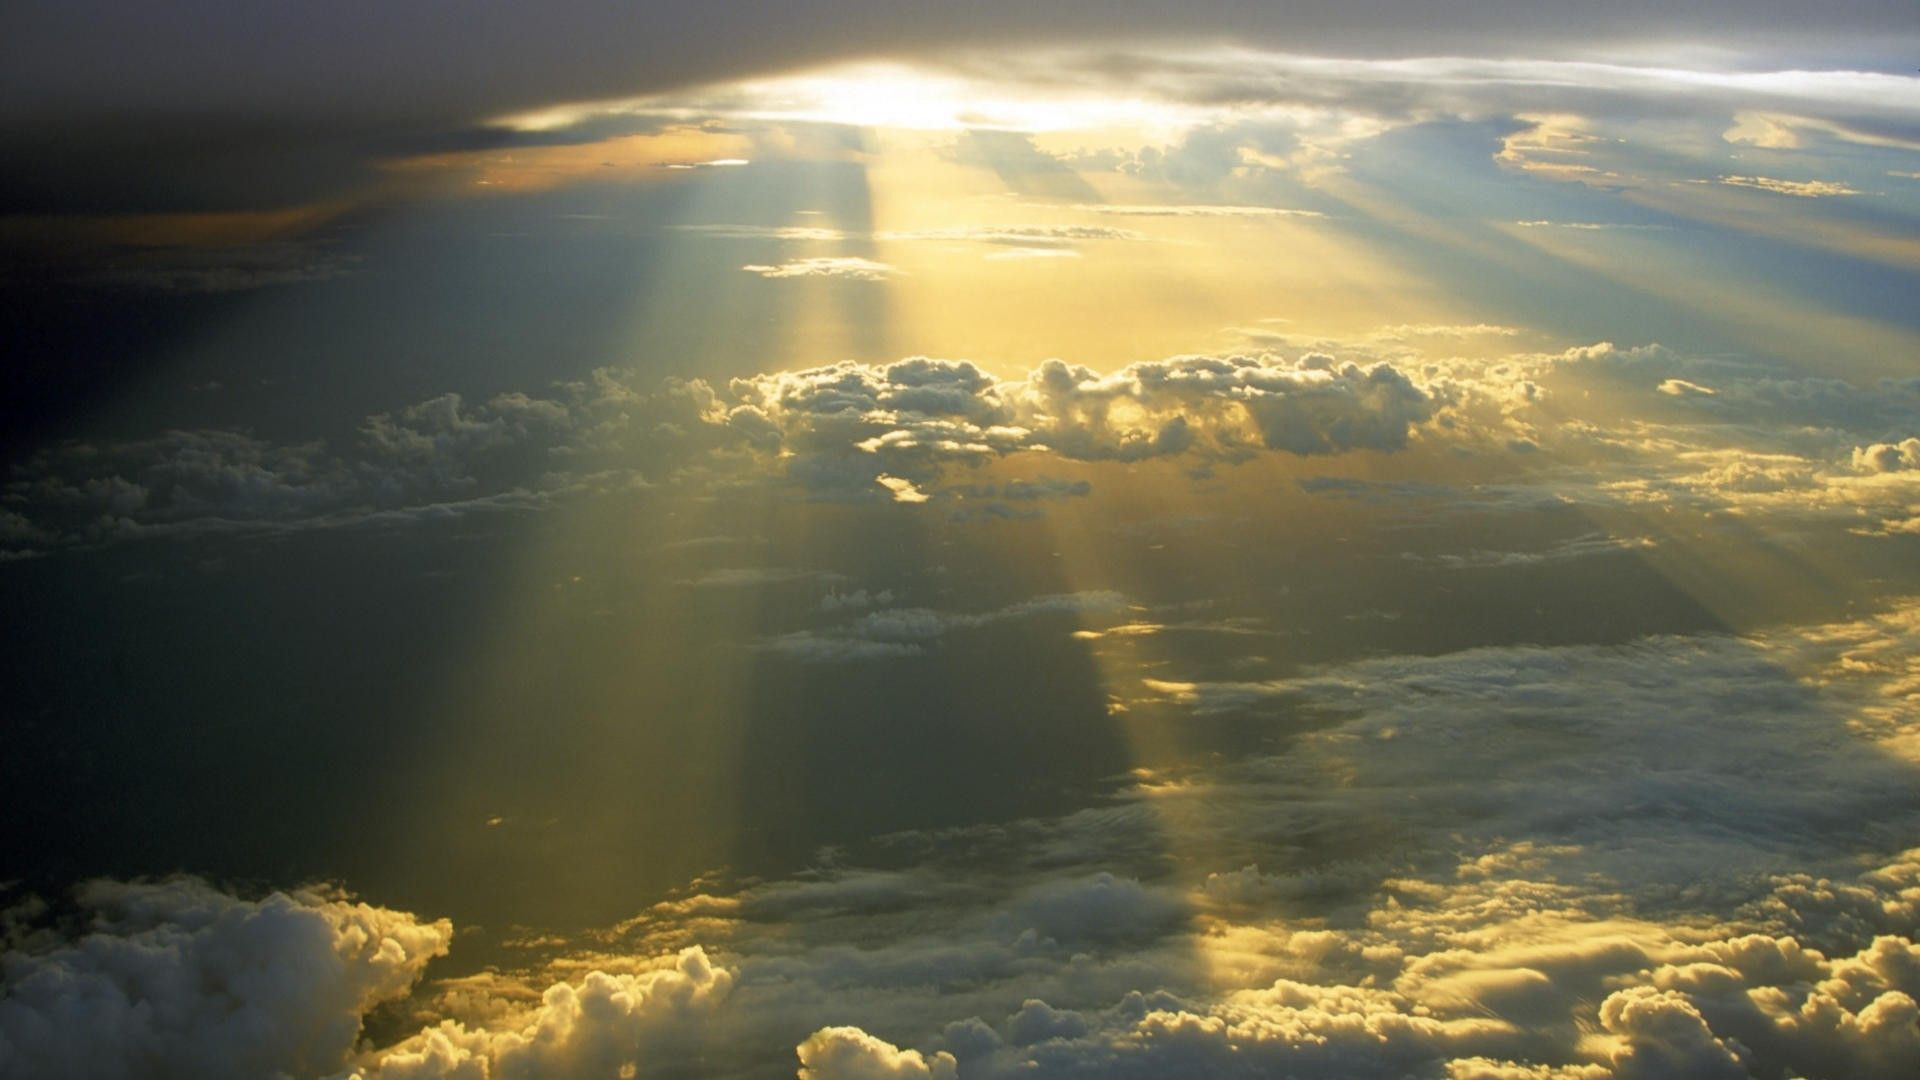 Sun breaking through the clouds wallpaper | Clouds, Cloud wallpaper,  Pictures of the sun